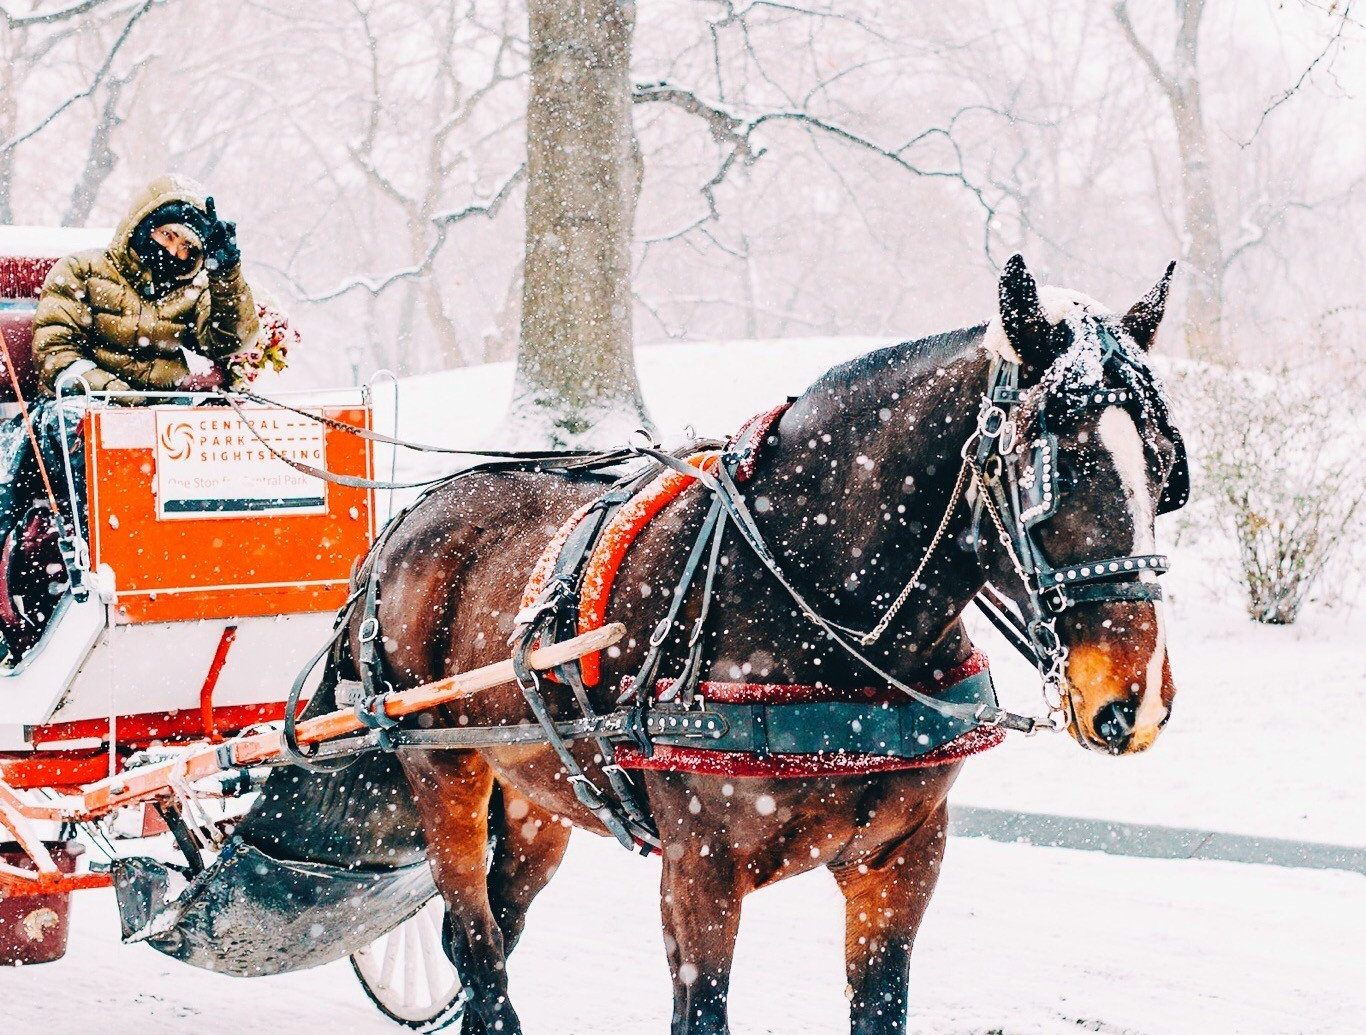 Boutique Hotels Romance Trip Ideas tree outdoor snow horse horse harness pulling transport carriage horse and buggy land vehicle vehicle Winter coachman drawn pack animal season sled pulled cart